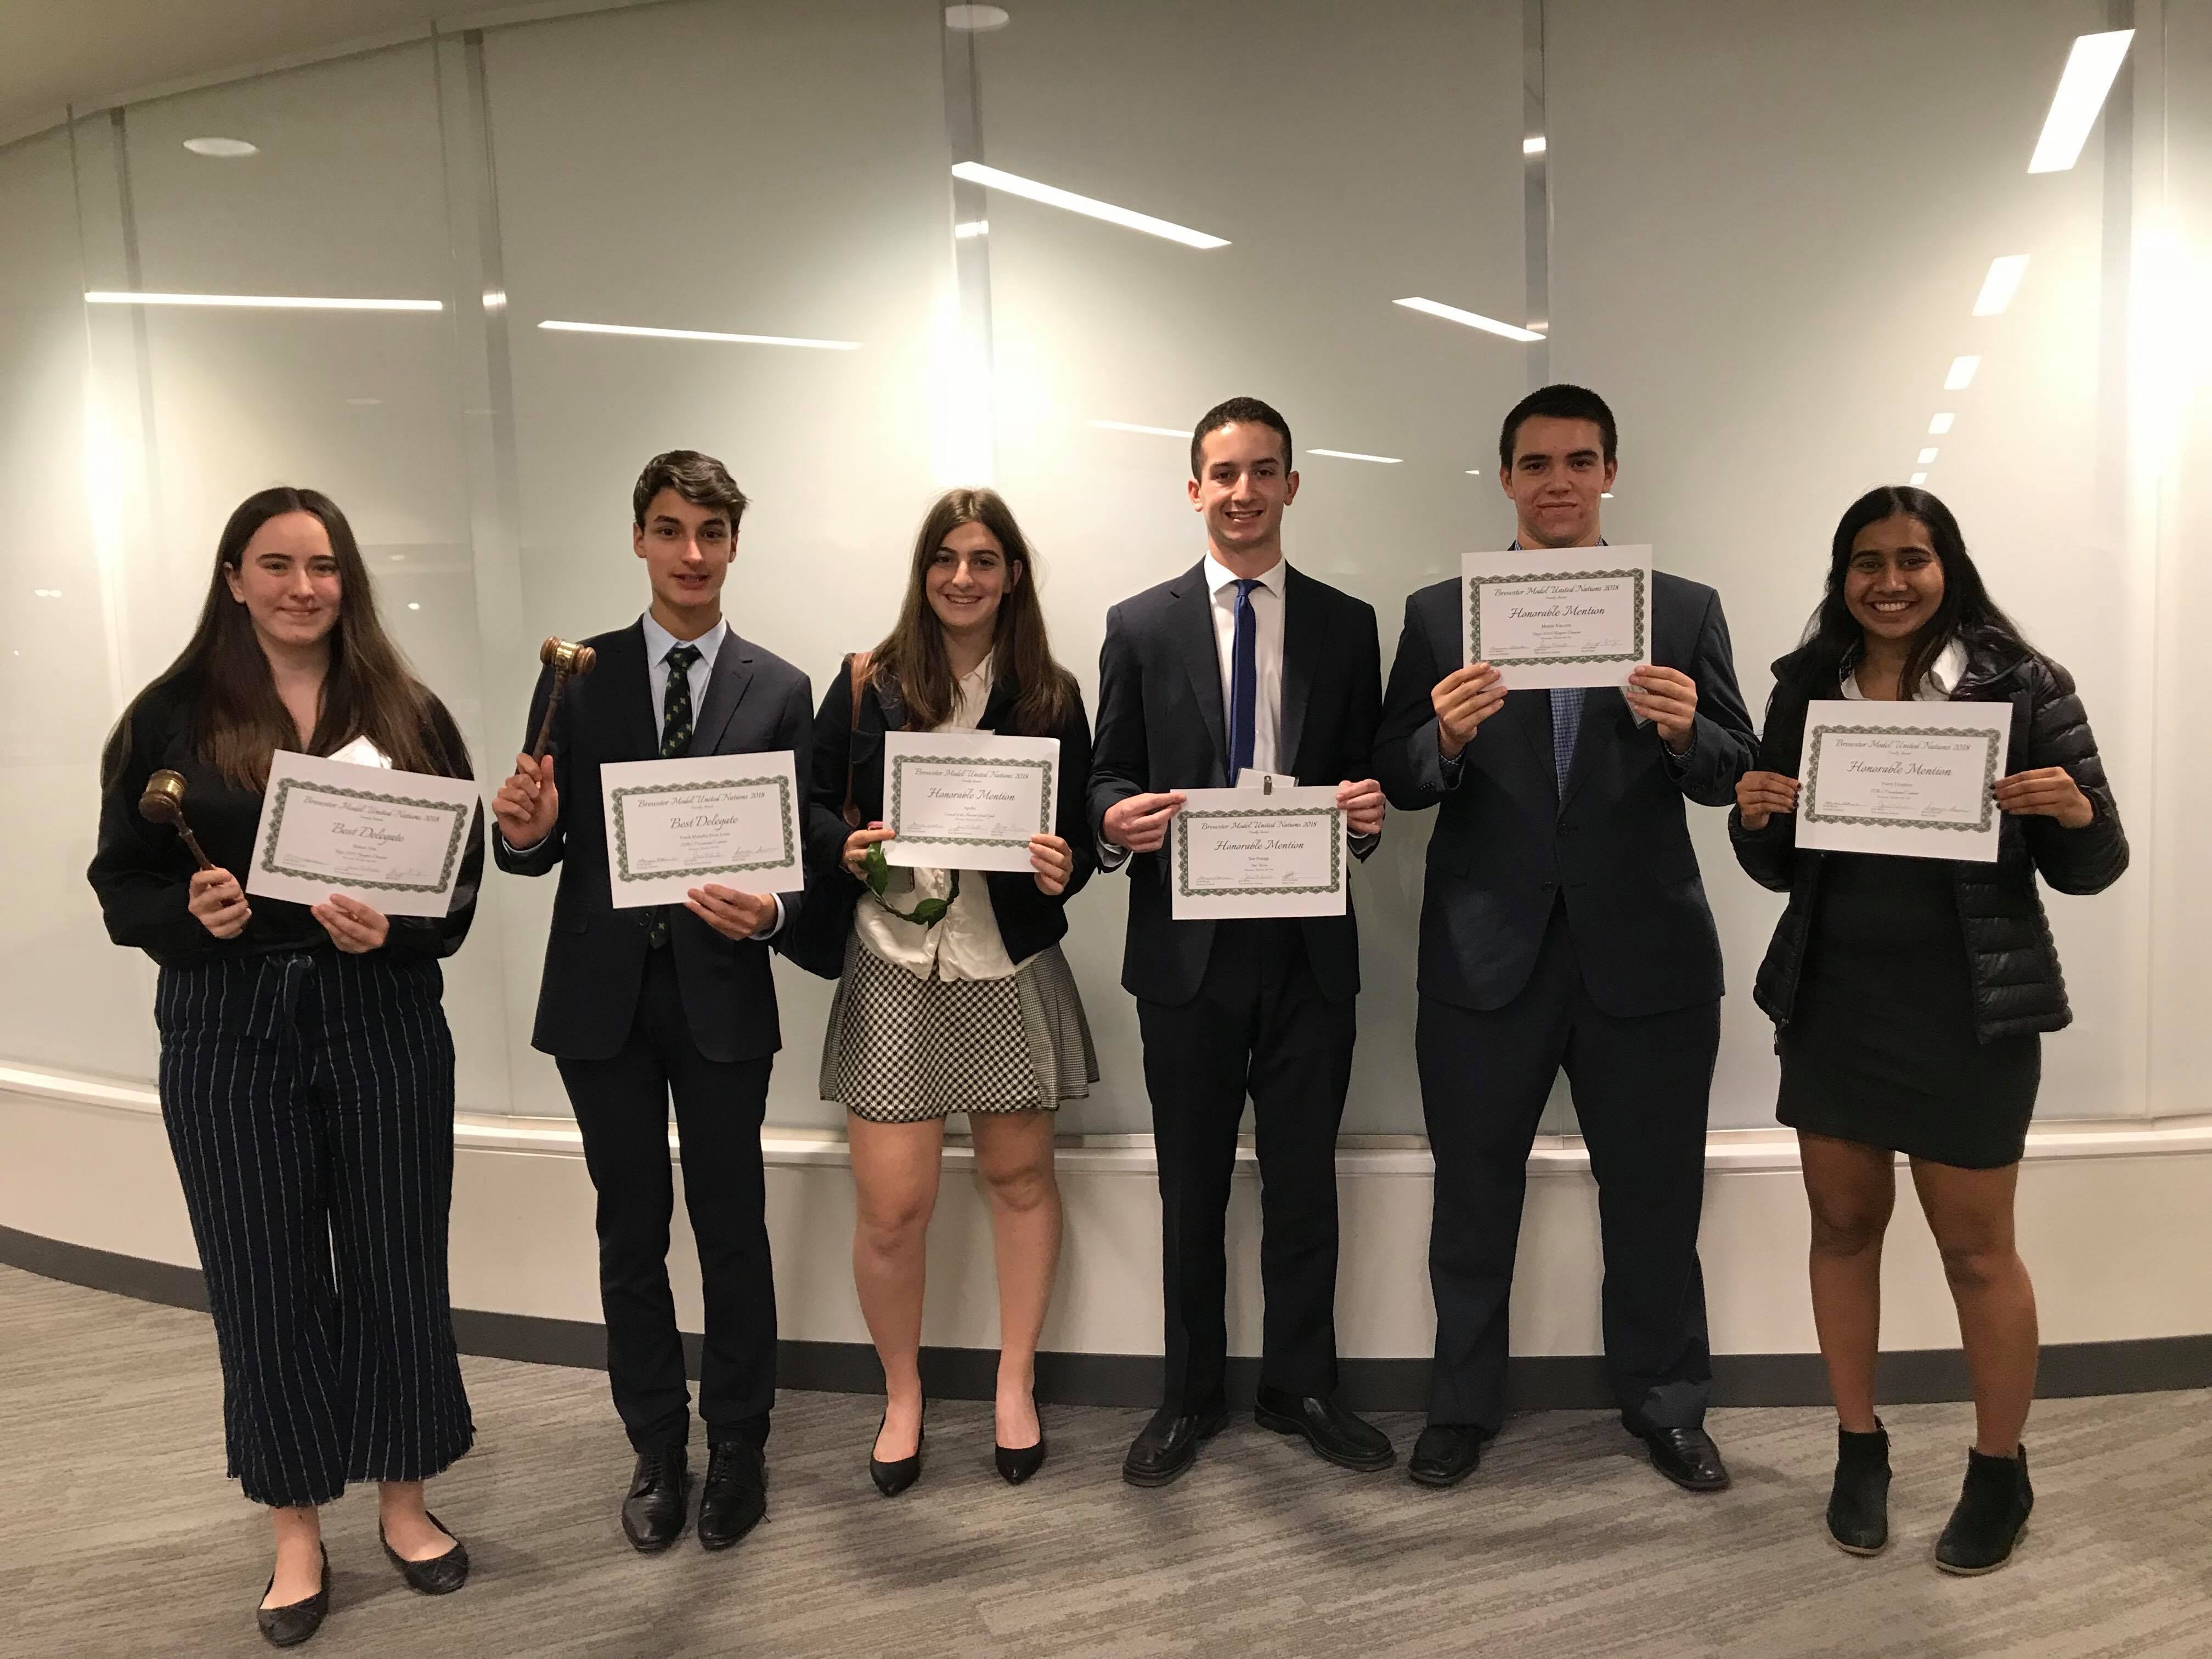 Congrats to our MUN Award Winners